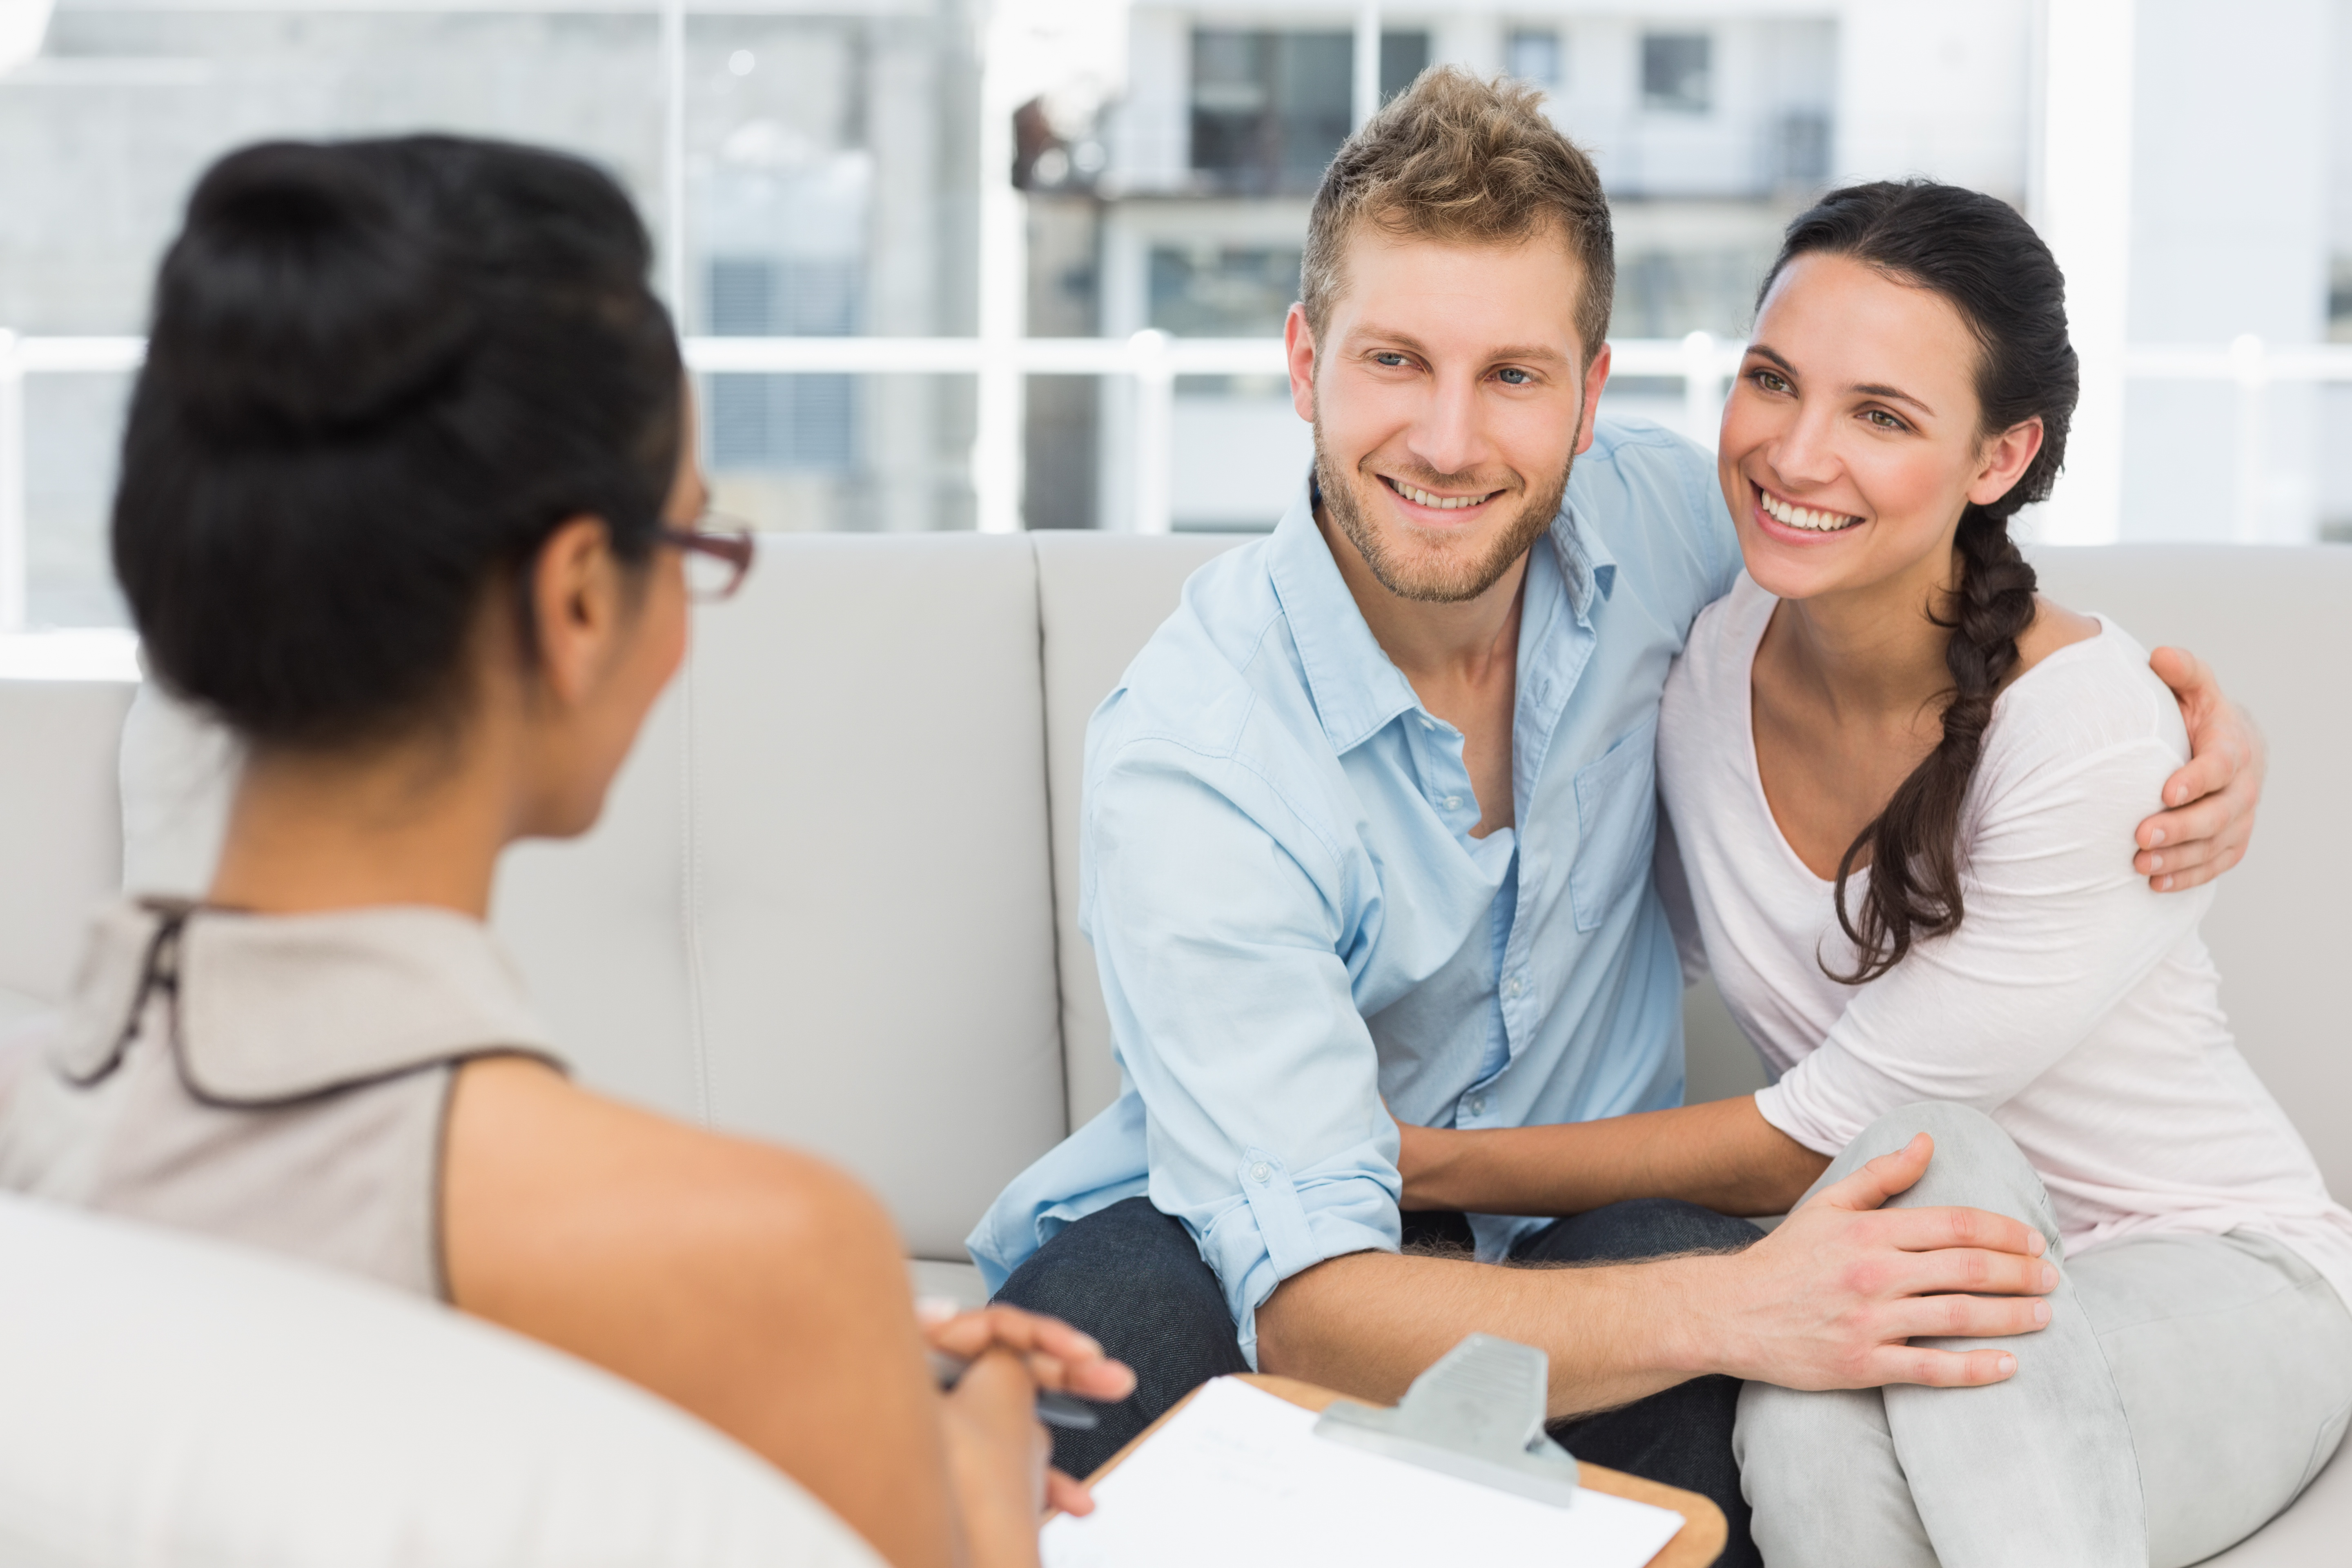 relationship counseling while dating